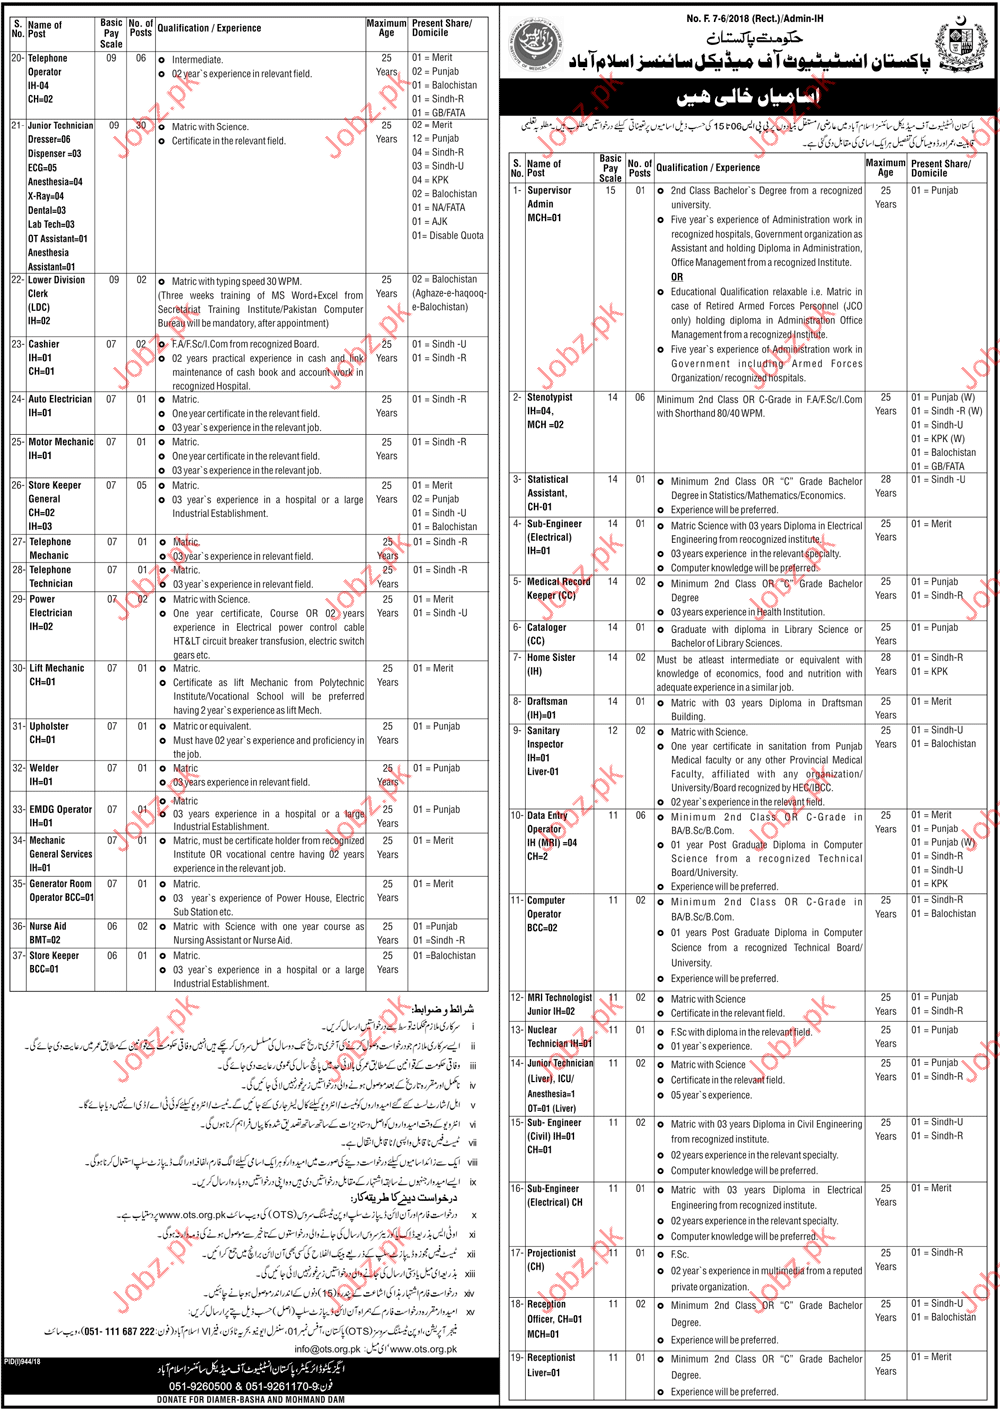 Pakistan Institute of Medical Sciences Admin Supervisor Jobs